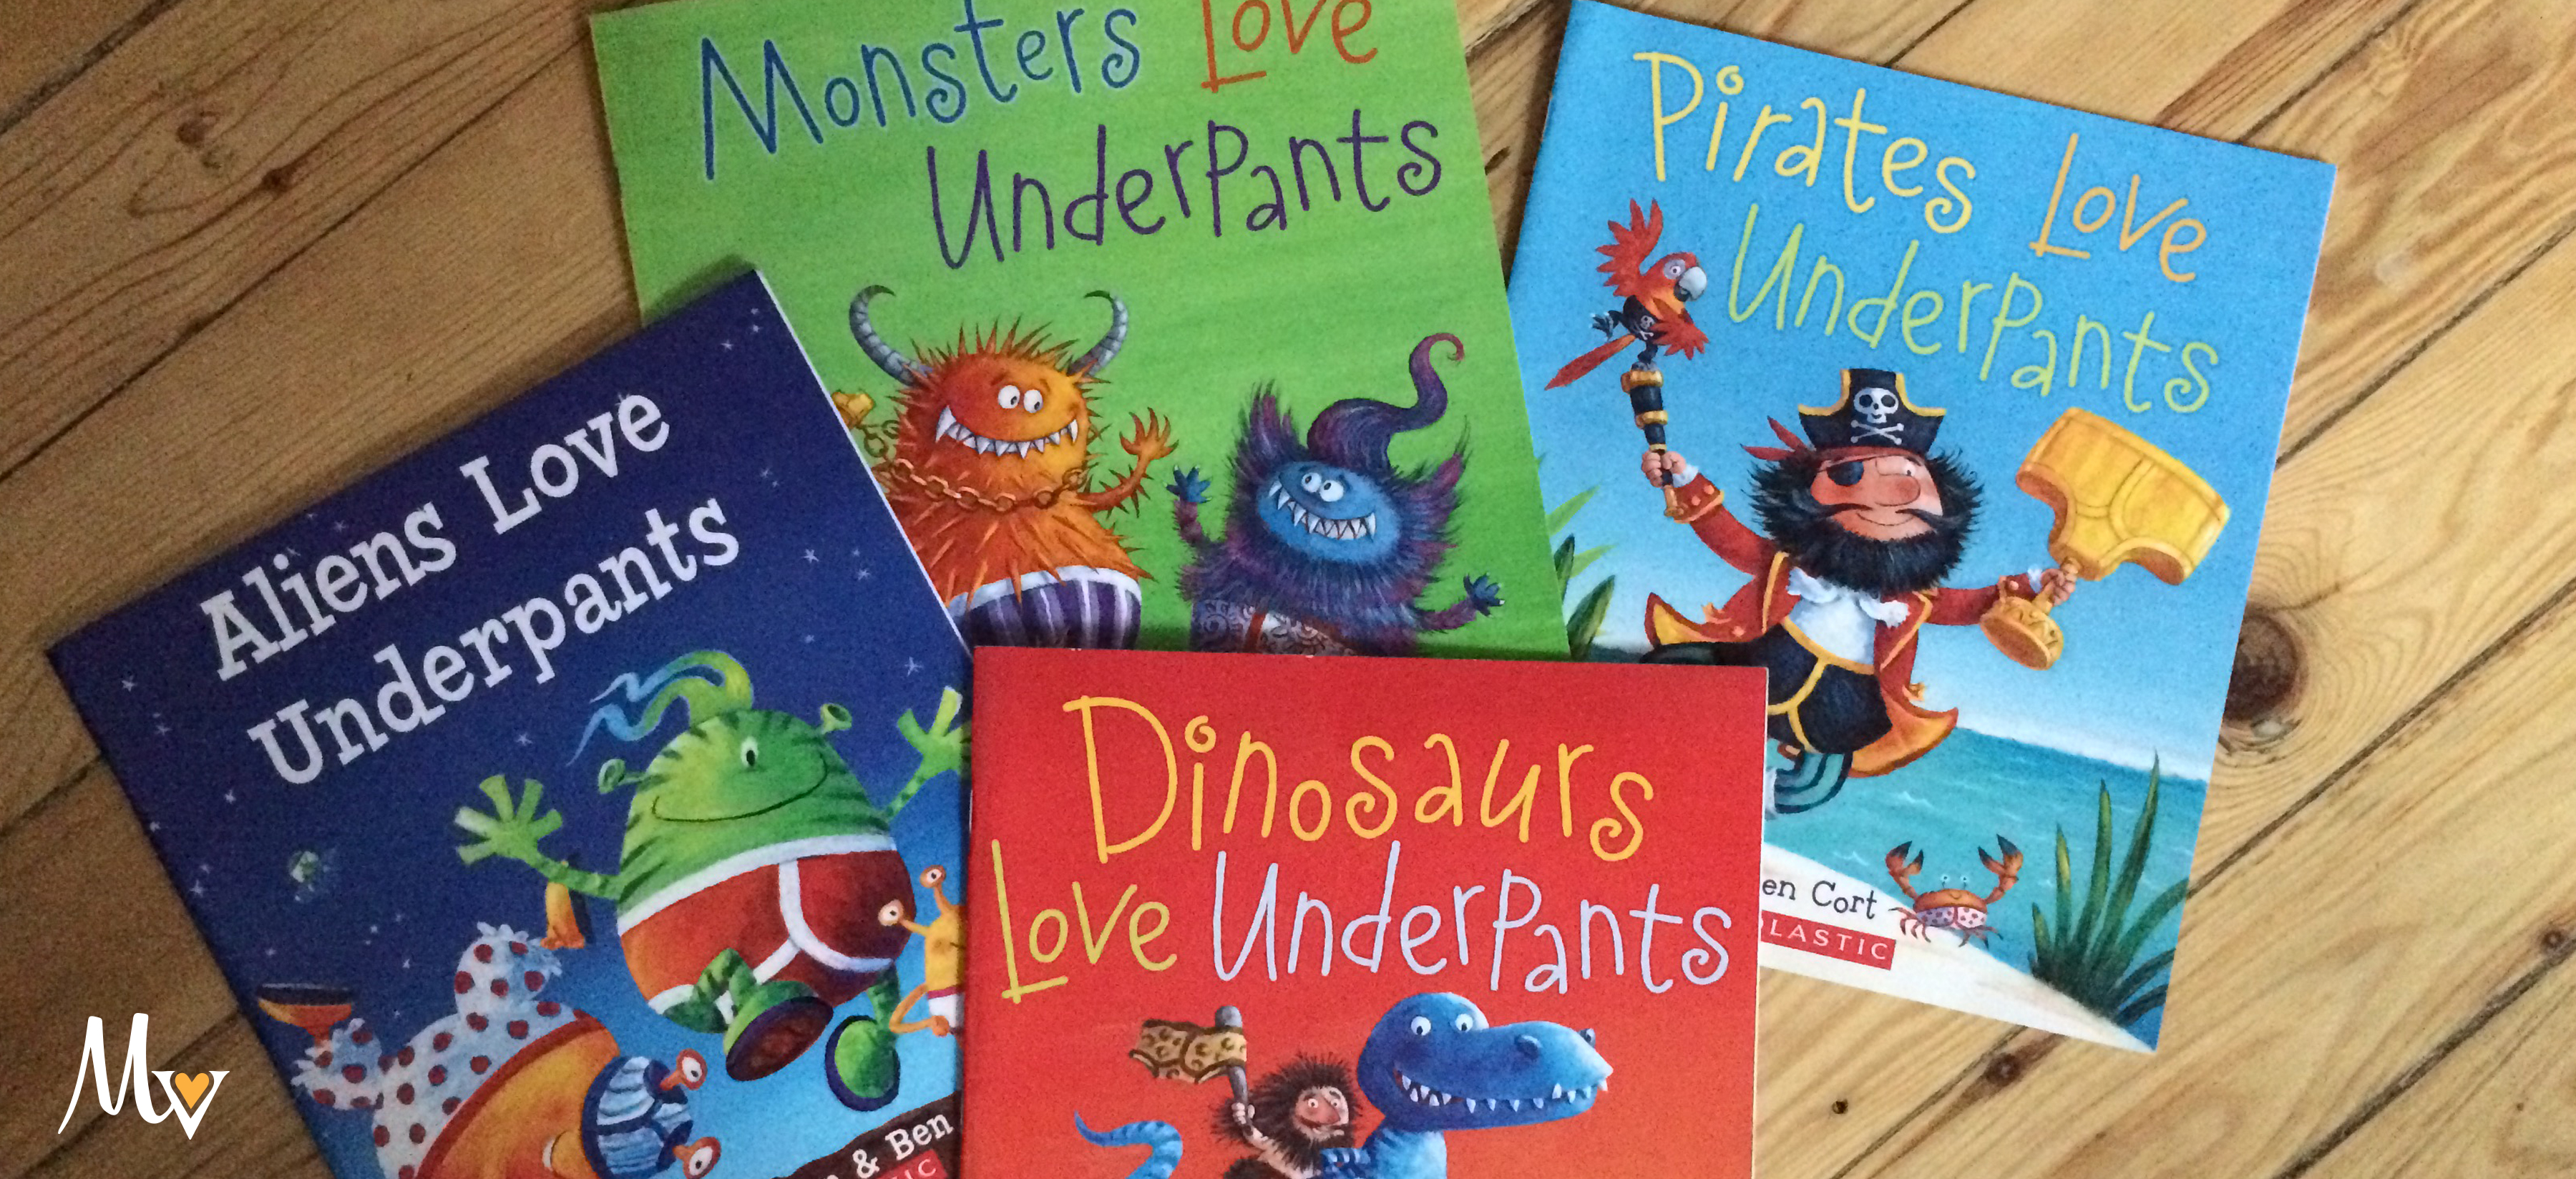 The Underpants Books